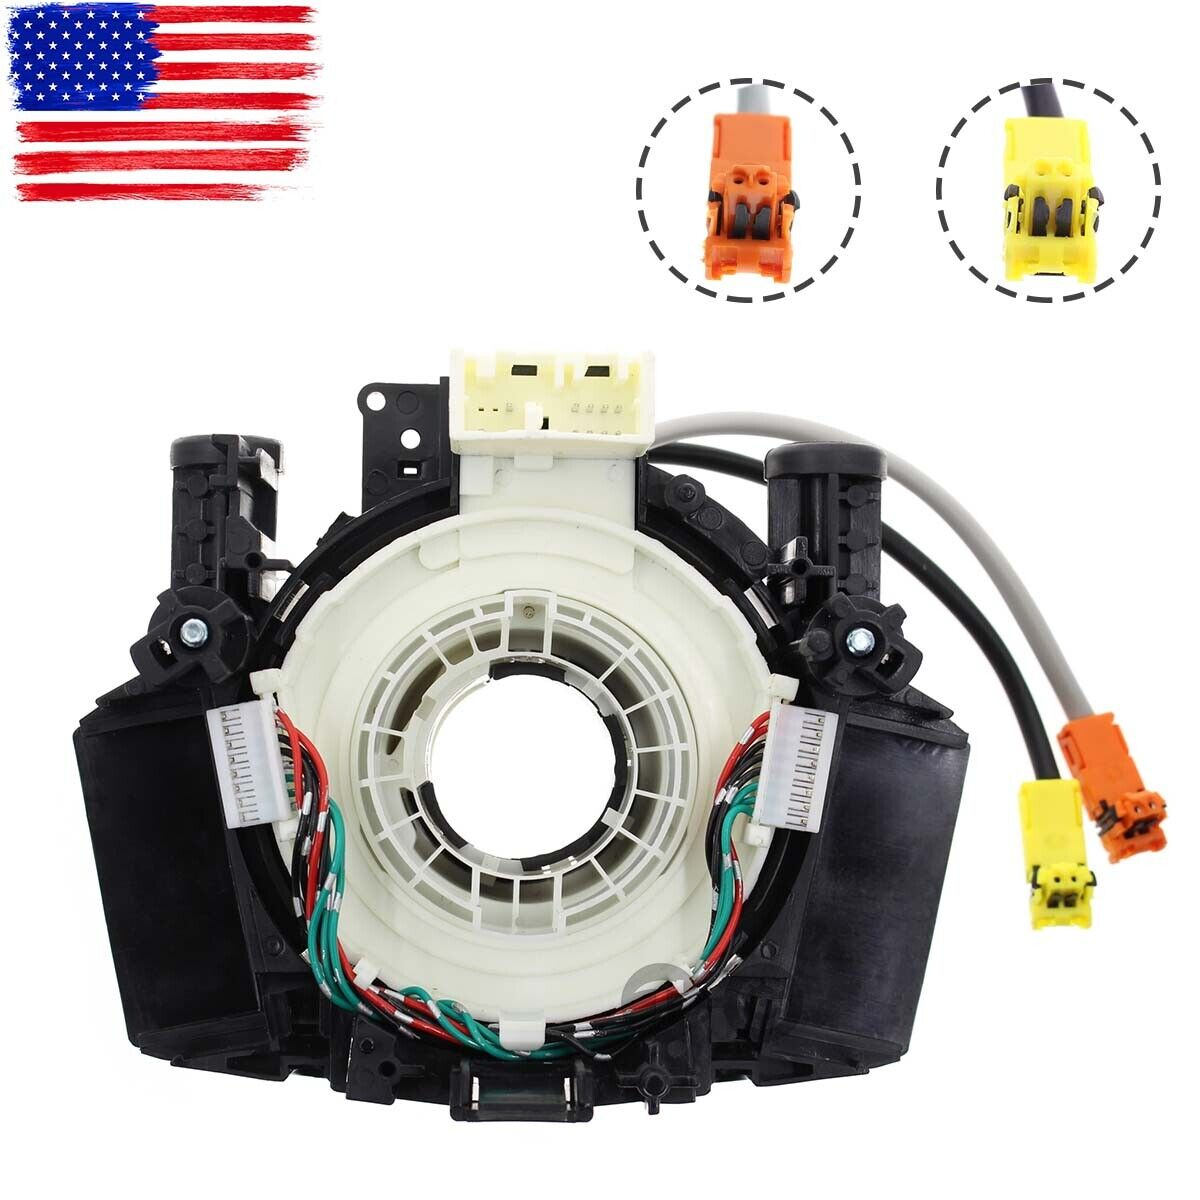 hight resolution of details about airbag spiral cable clock spring for nissan quest 2004 2009 titan 2004 2008